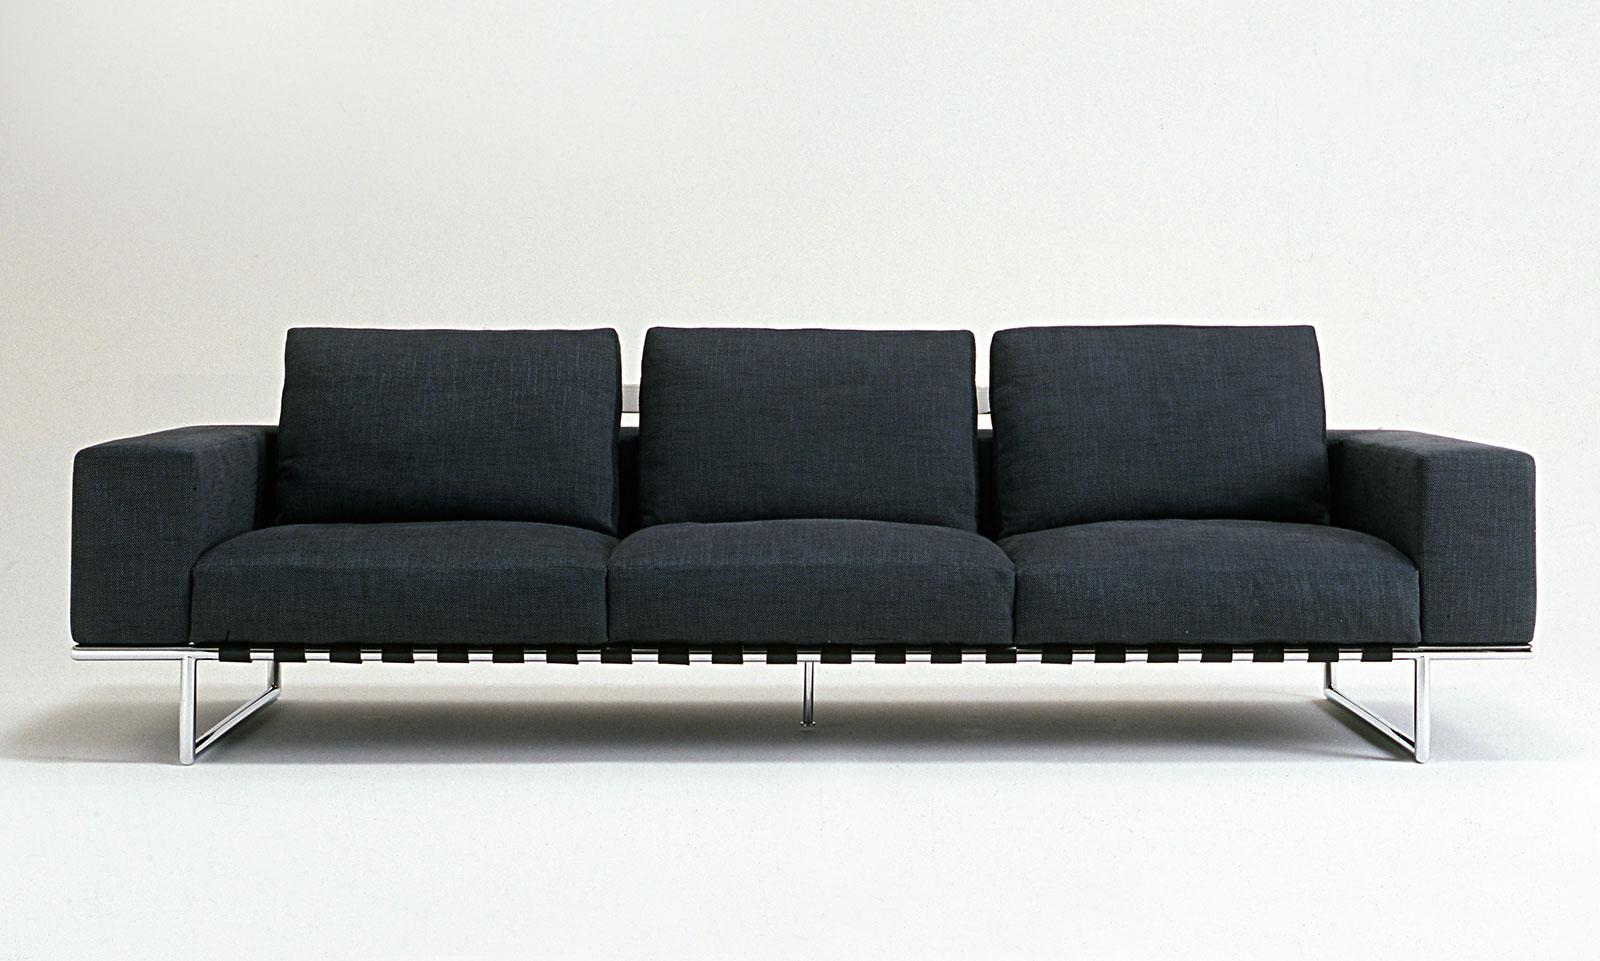 Sofa delivery innovation inspiration faux leather for Hometown furniture delivery